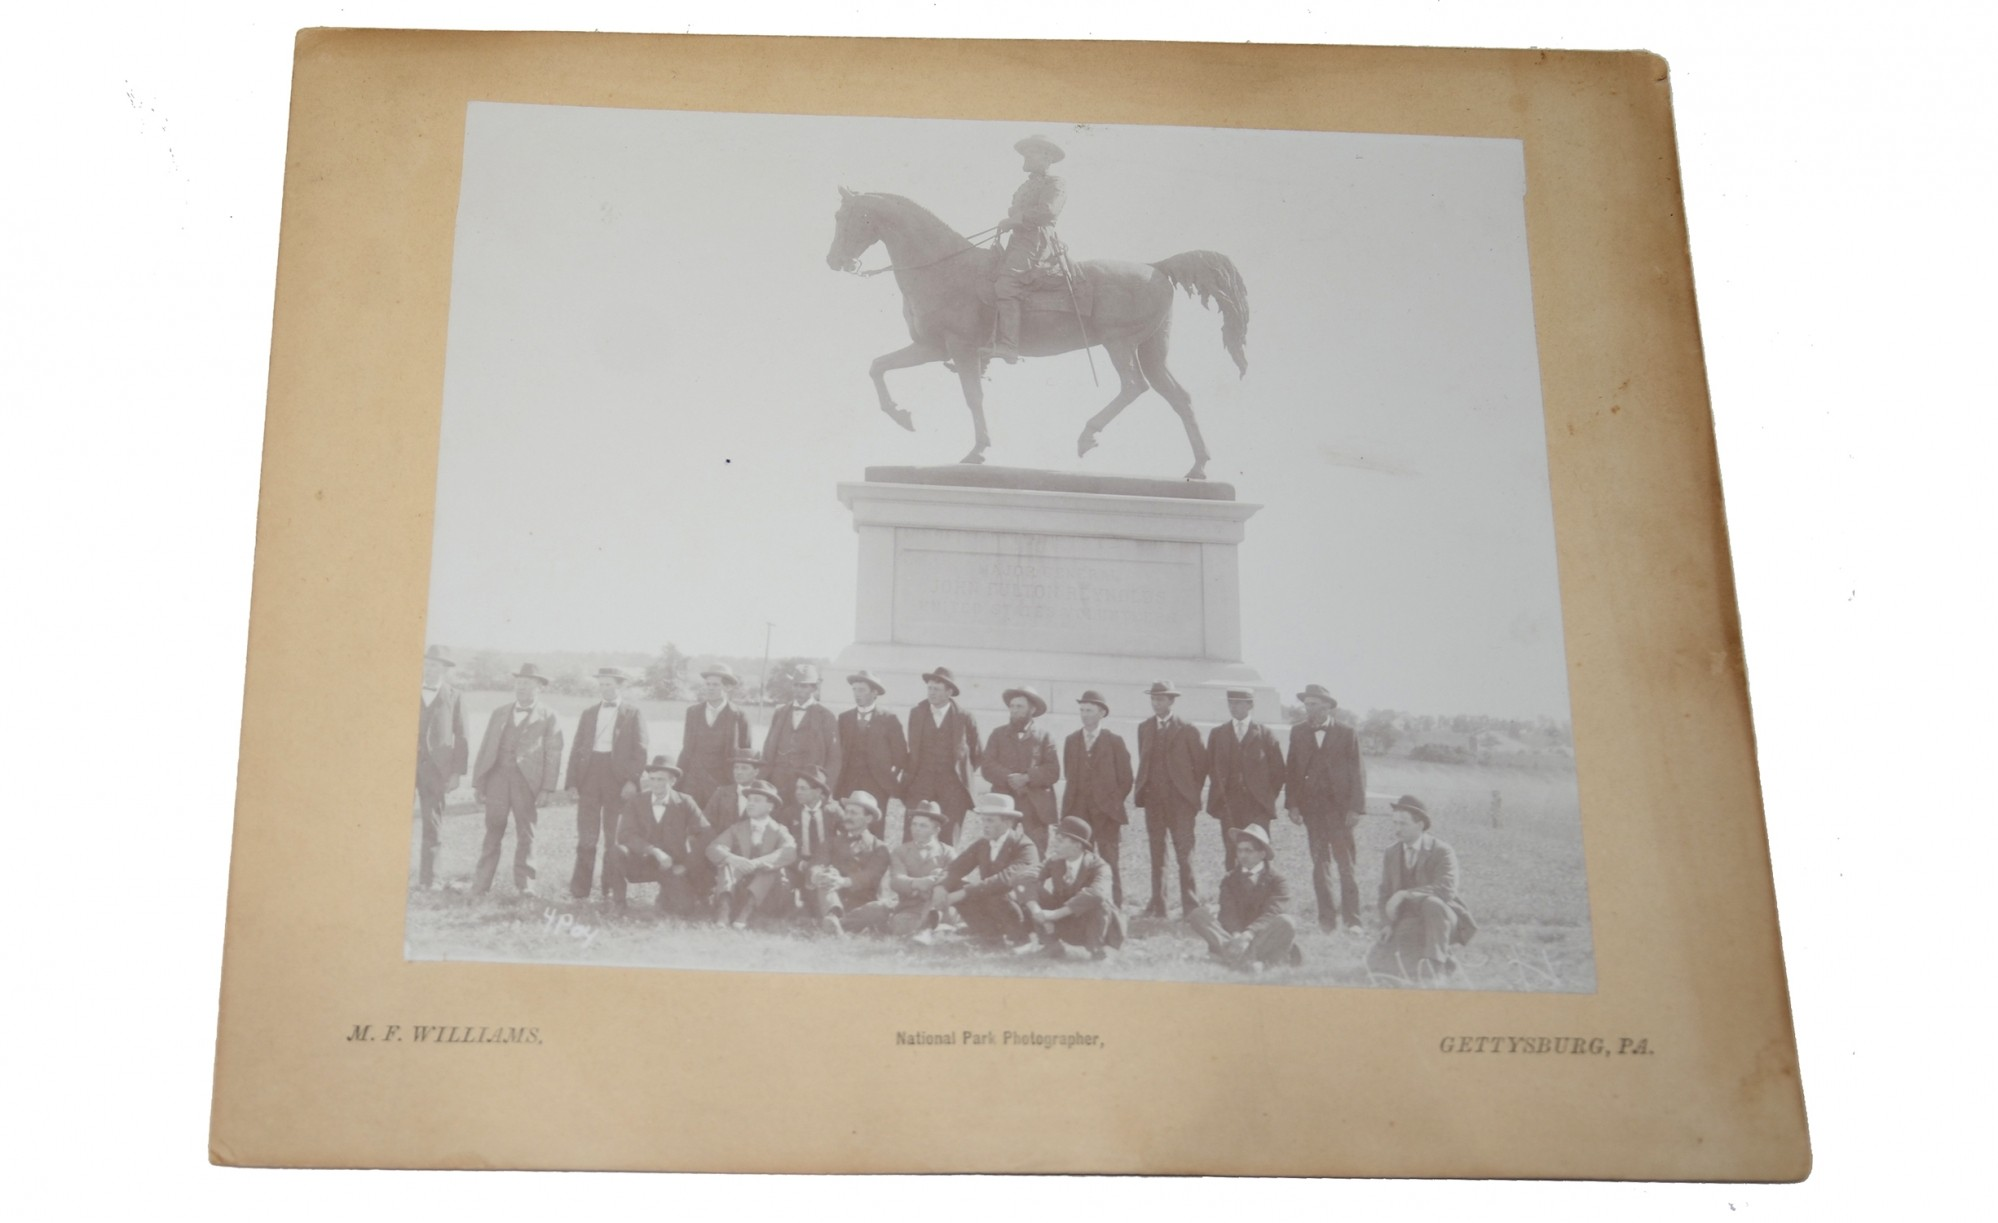 PHOTO OF GROUP OF TOURISTS ON GETTYSBURG BATTLEFIELD, LATE 19TH OR EARLY 20TH CENTURY